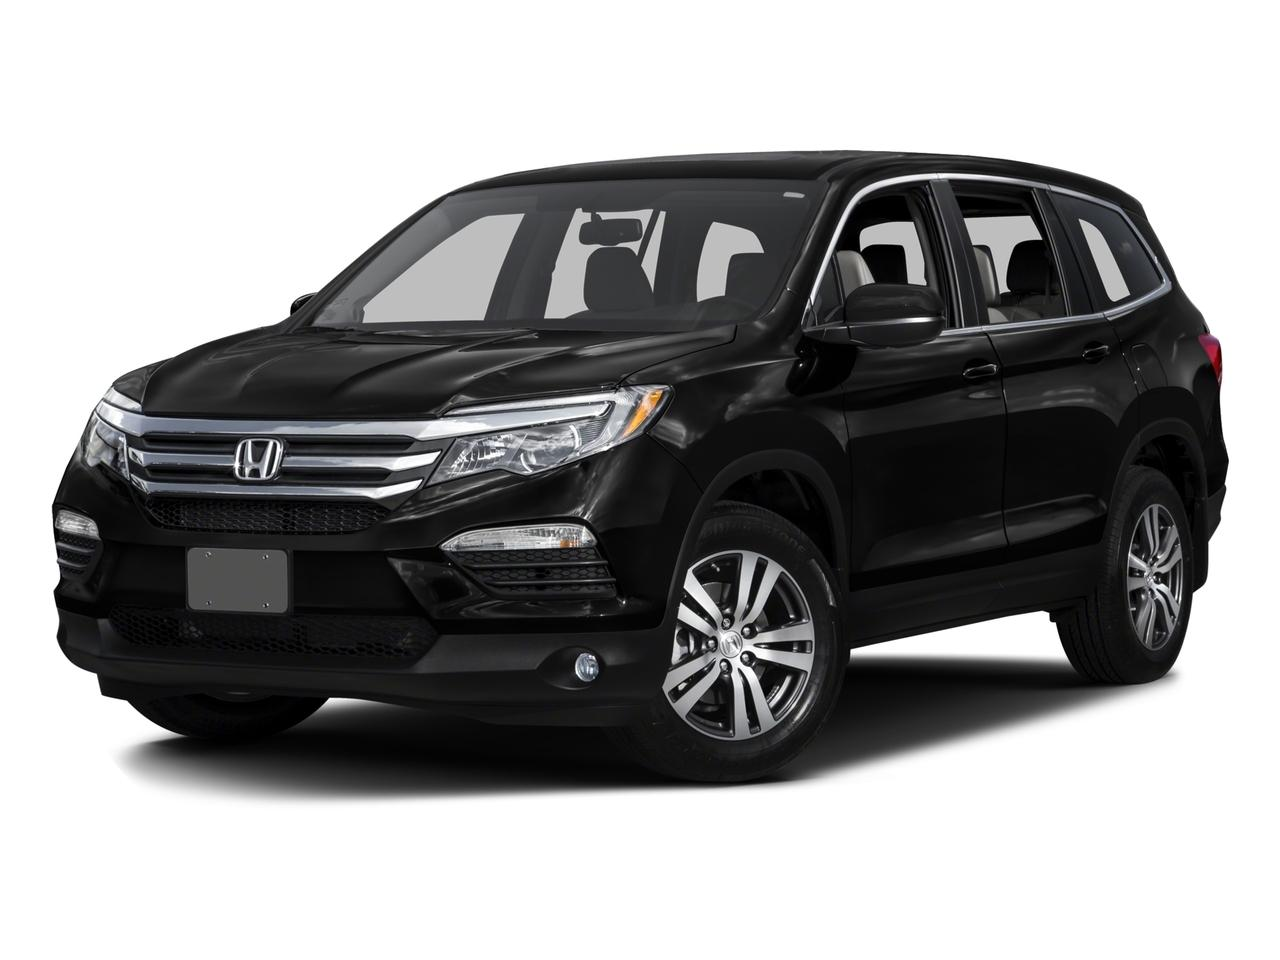 2016 Honda Pilot Vehicle Photo in Williamsville, NY 14221